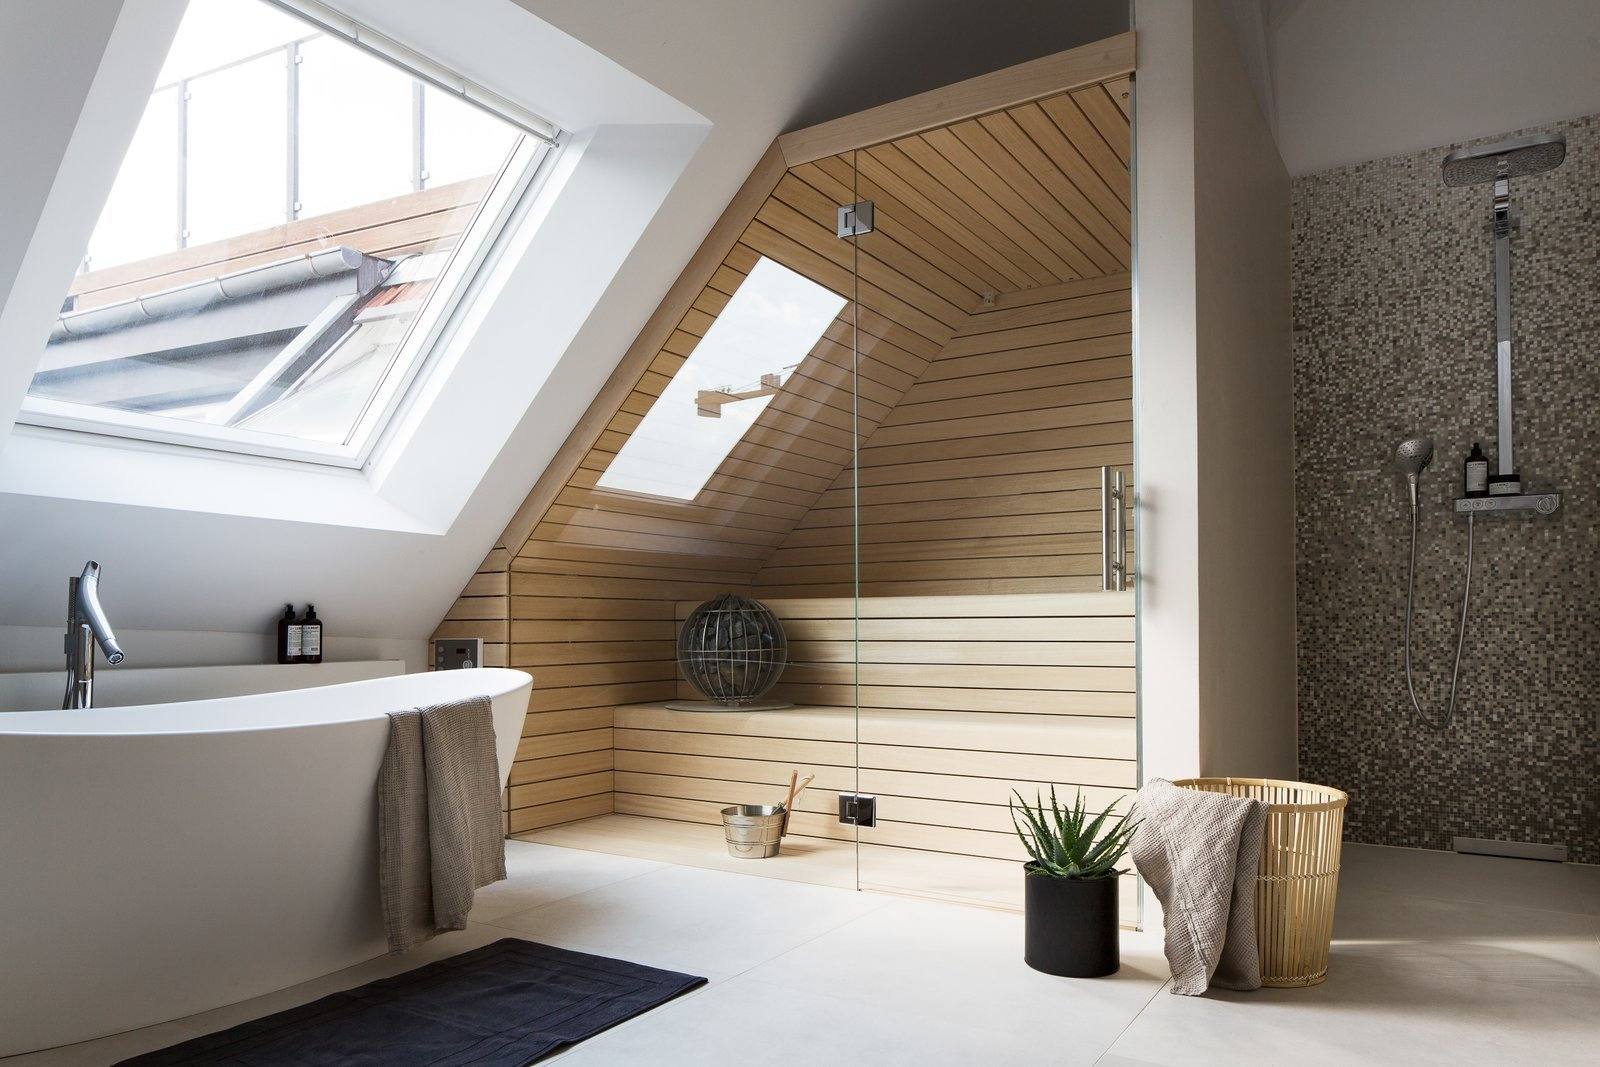 This converted attic in a turn-of-the-century building in Berlin's Charlottenburg neighborhood has a large skylight close the bathtub, on the side-slope of the roof, which allows one to look up at the sky while having a relaxing soak.